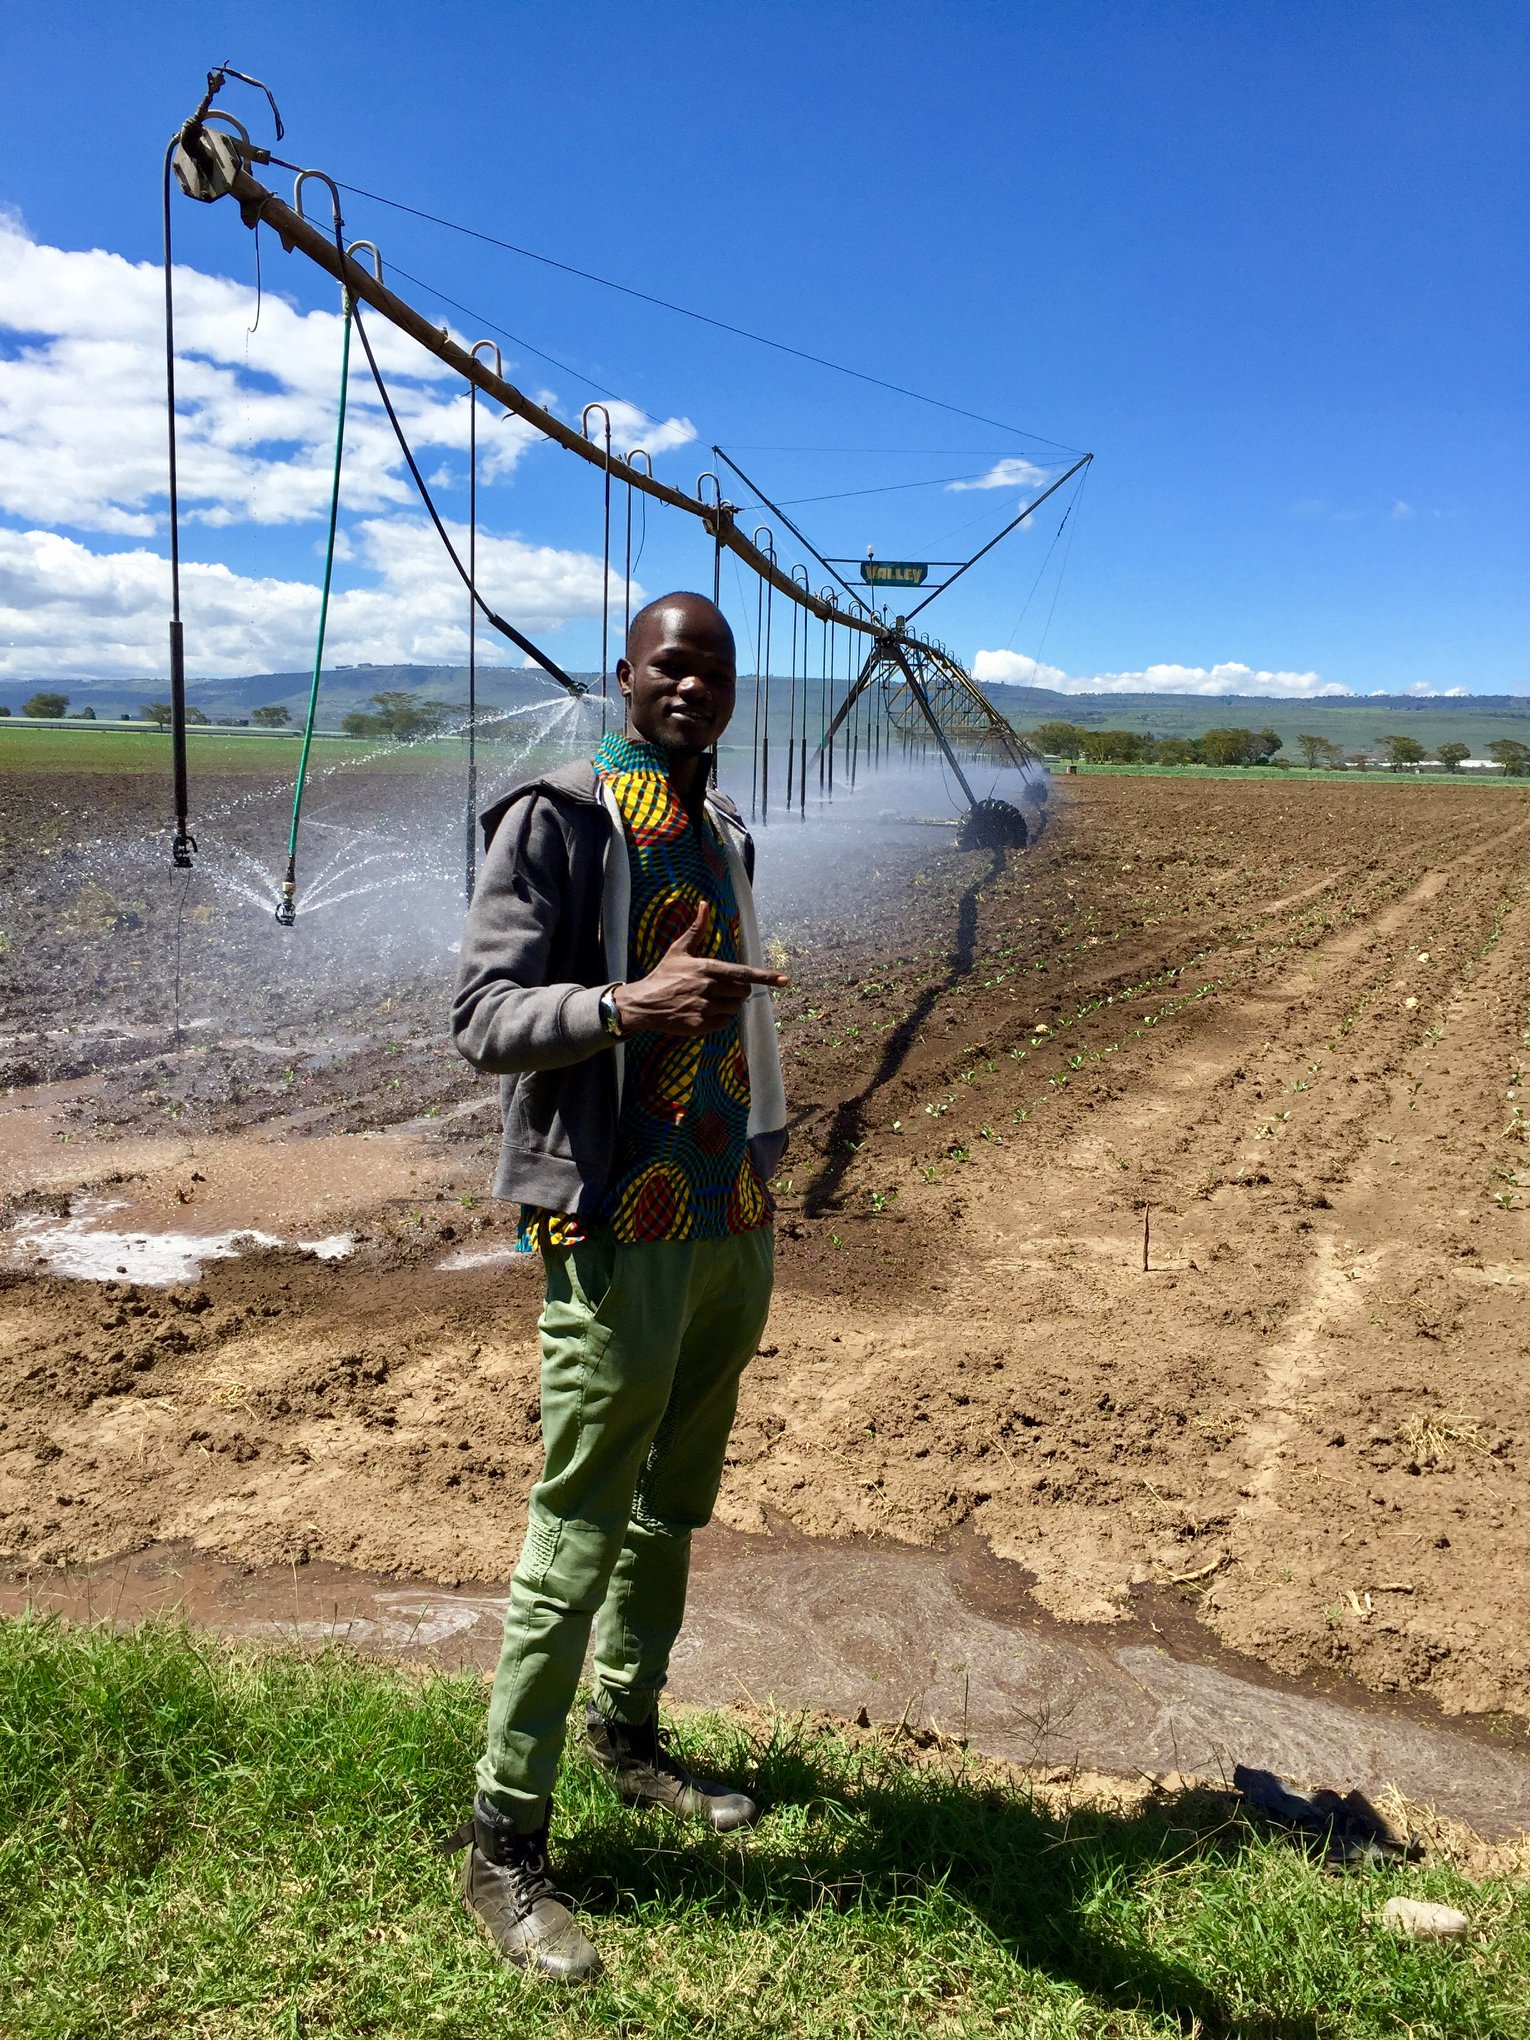 James Madhier touring farming facilities to learn about efficient water use in agriculture in preparation for the launch of the Rainmaker Enterprise's pilot site.